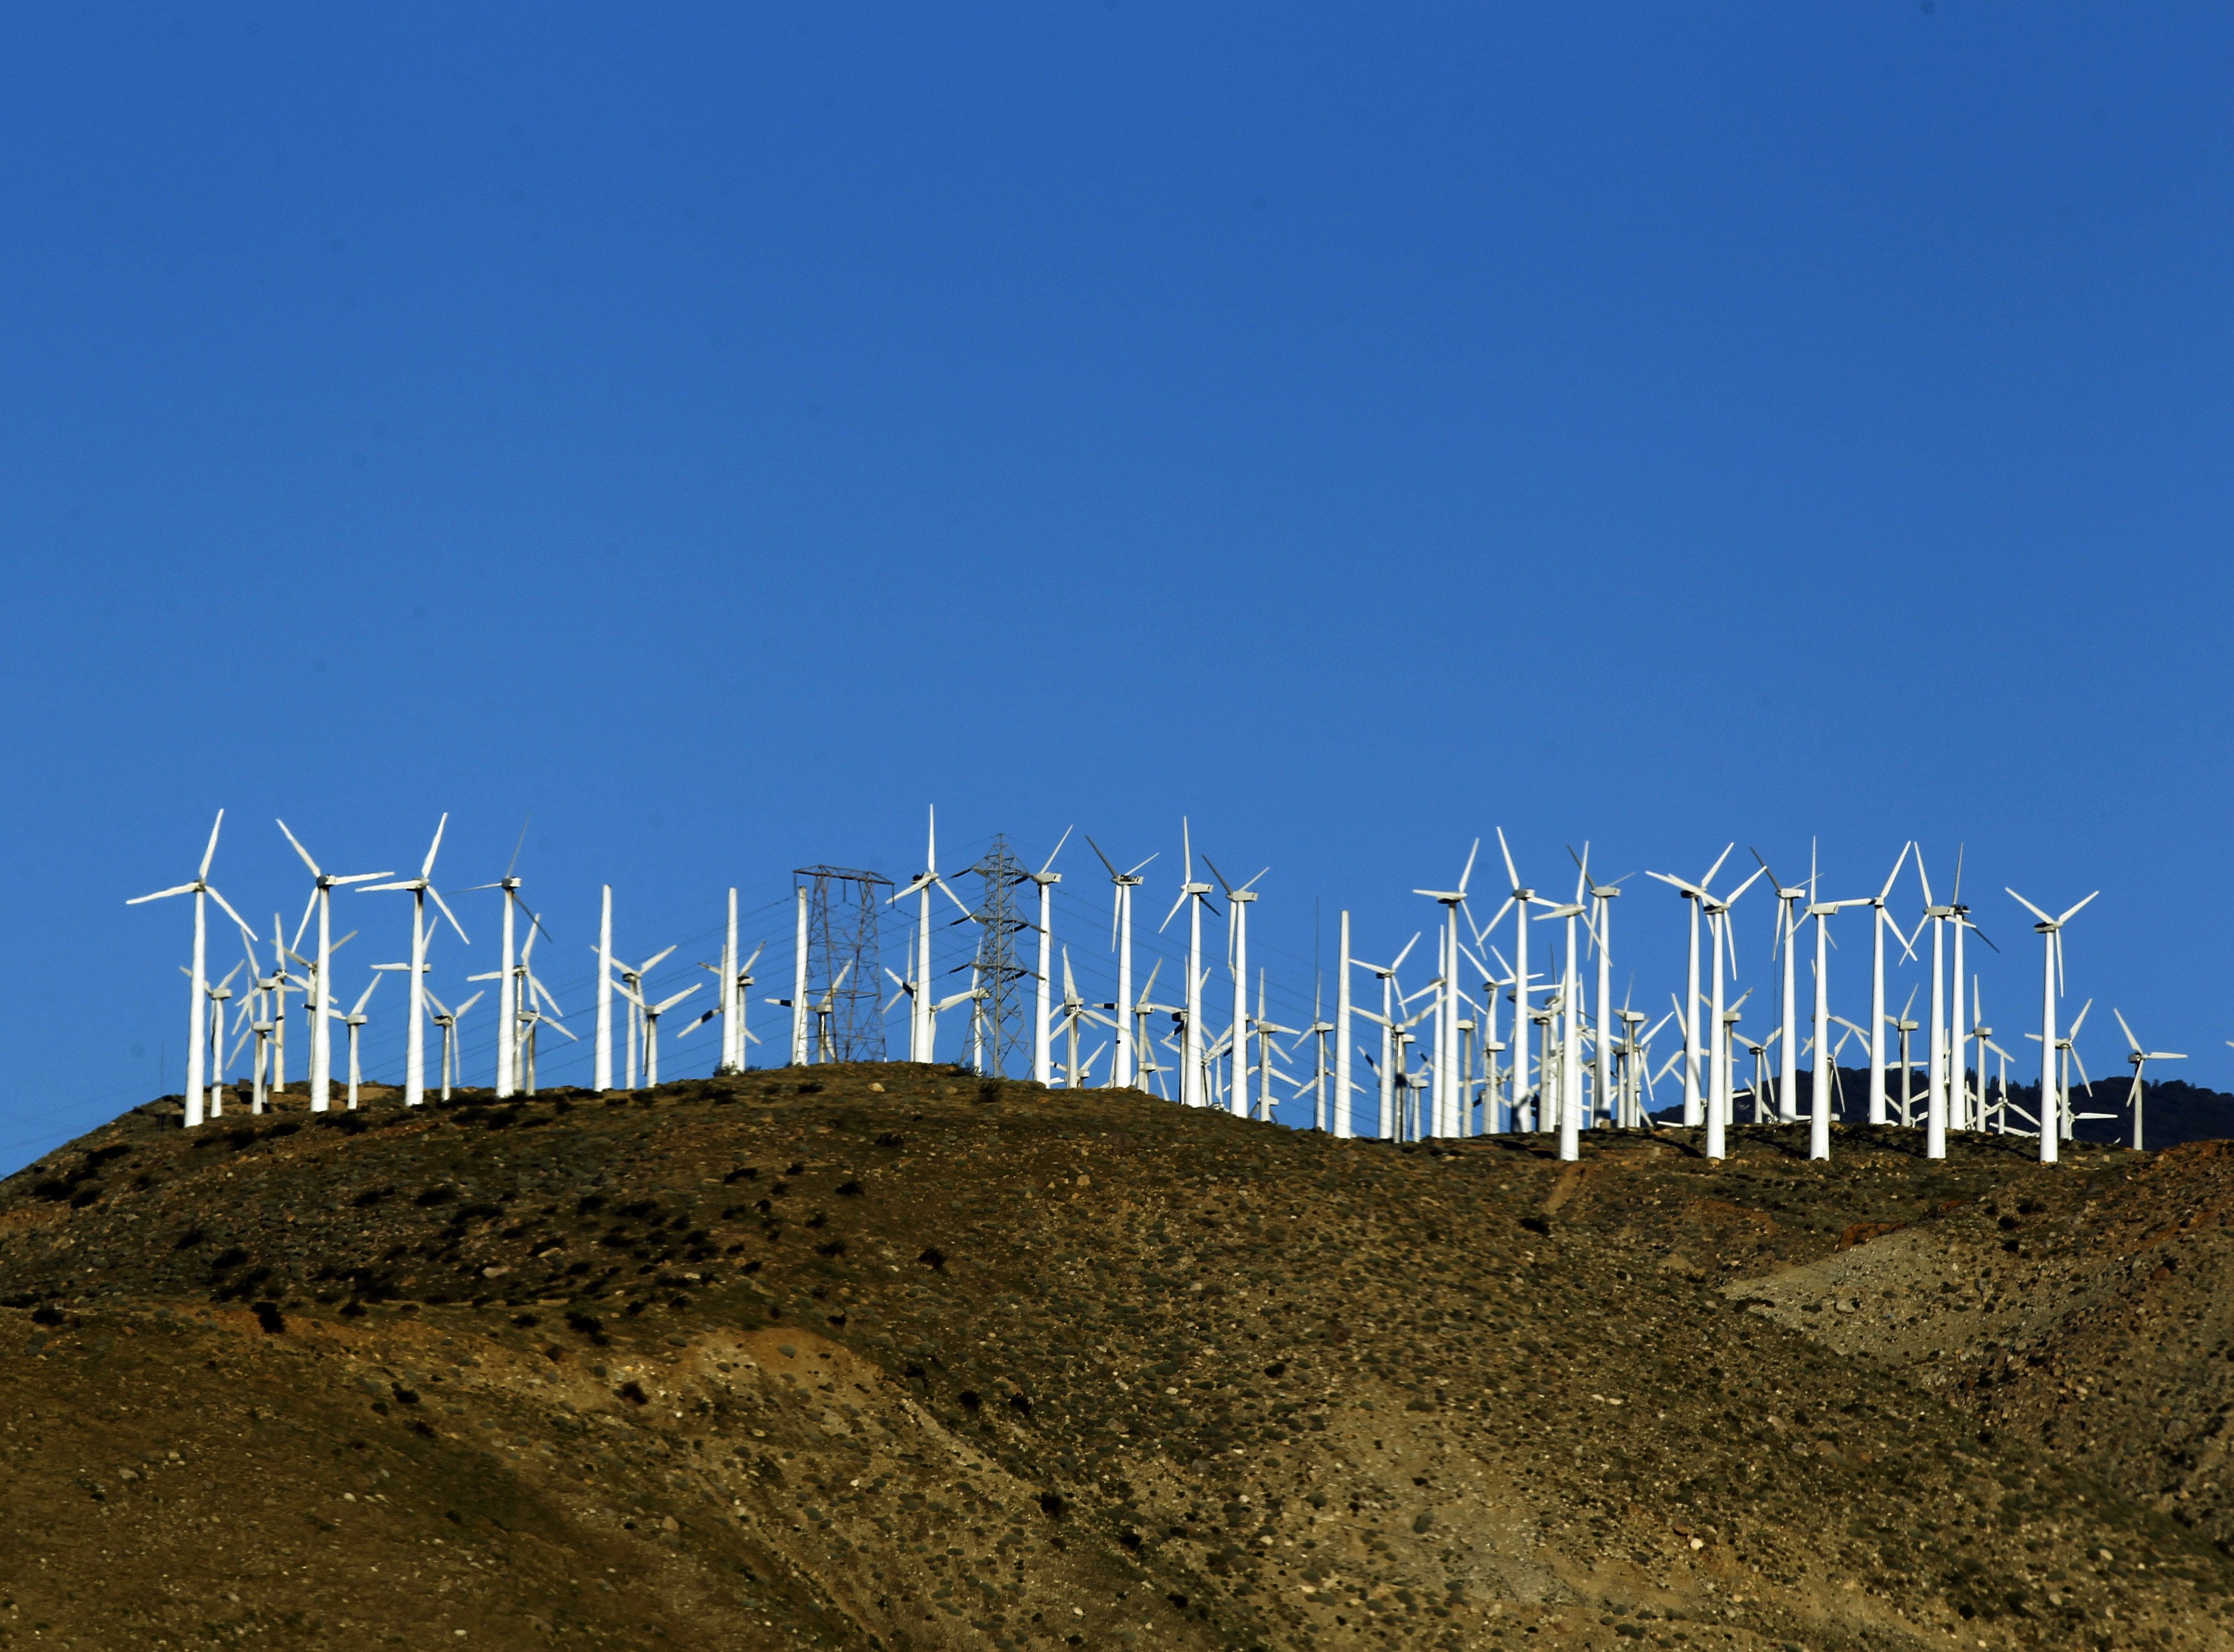 Windmills are seen at a wind farm in Palm Springs, California, February 9, 2011. California aims to slow climate change by putting a price on carbon -- a low, low starting price. The program is the last, keystone step in a controversial half-decade push to green the state's business for the good of the planet and the economy.  Picture taken February 9, 2011.  To match Special Report CARBON-CALIFORNIA/    REUTERS/Lucy Nicholson (UNITED STATES - Tags: ENERGY ENVIRONMENT) - GM1E72H1RPZ01